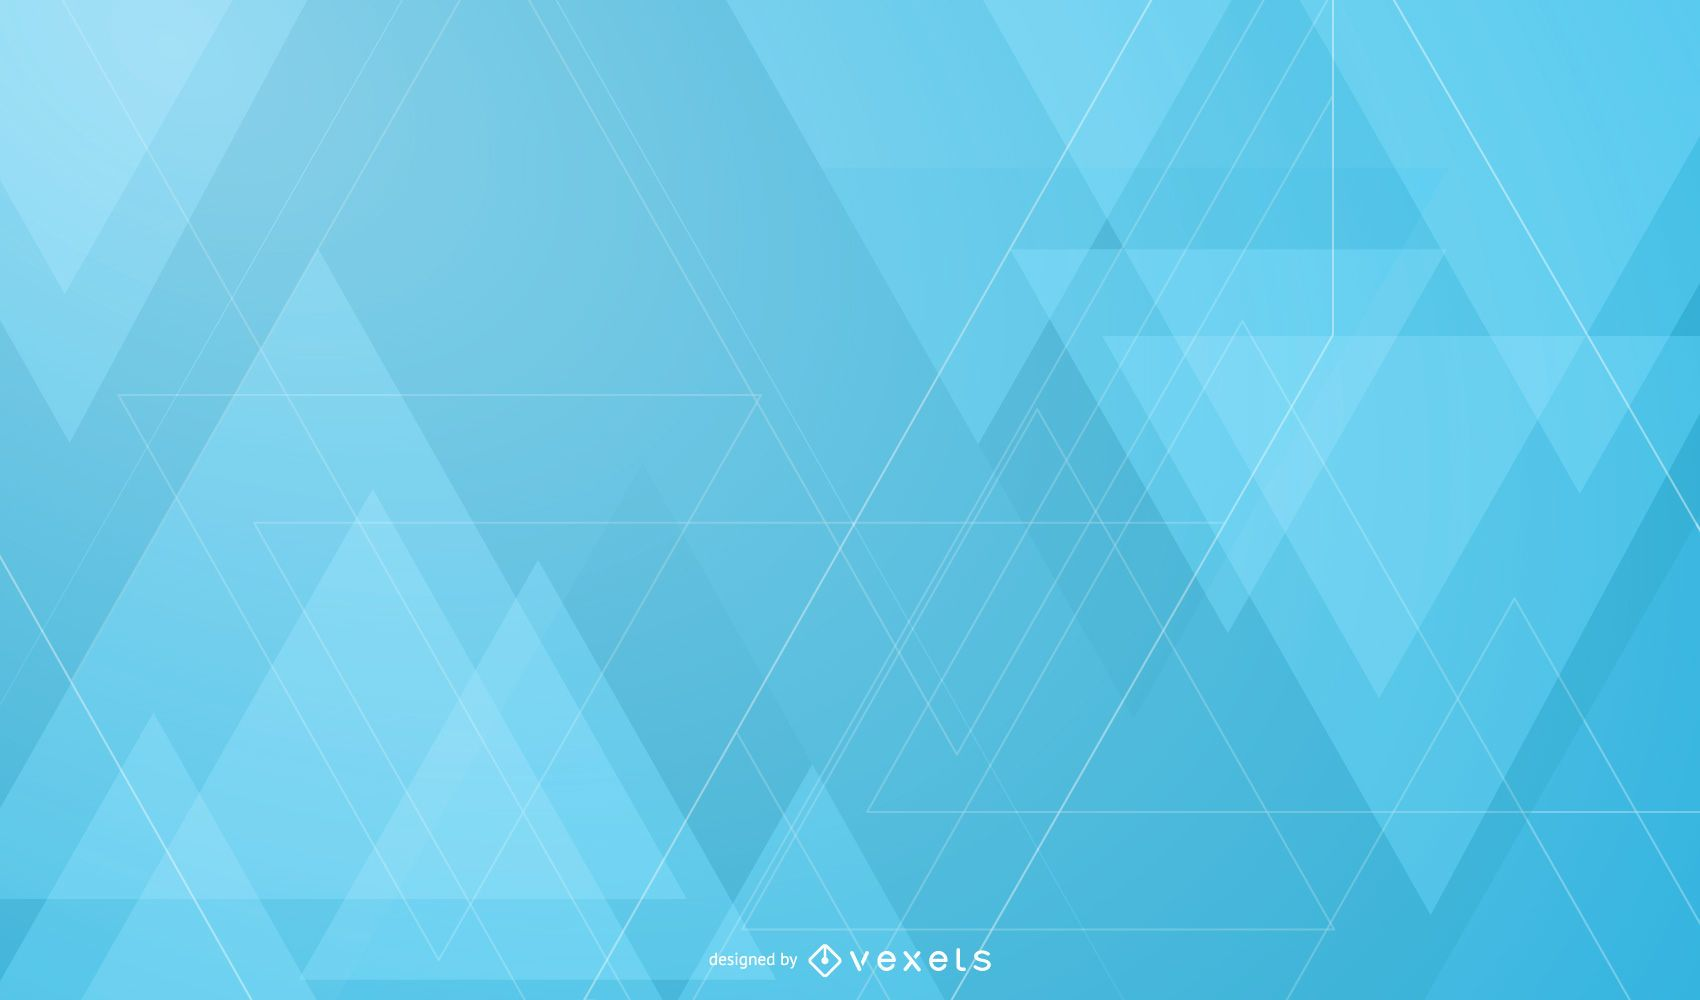 Abstract Overlapping Triangles Background